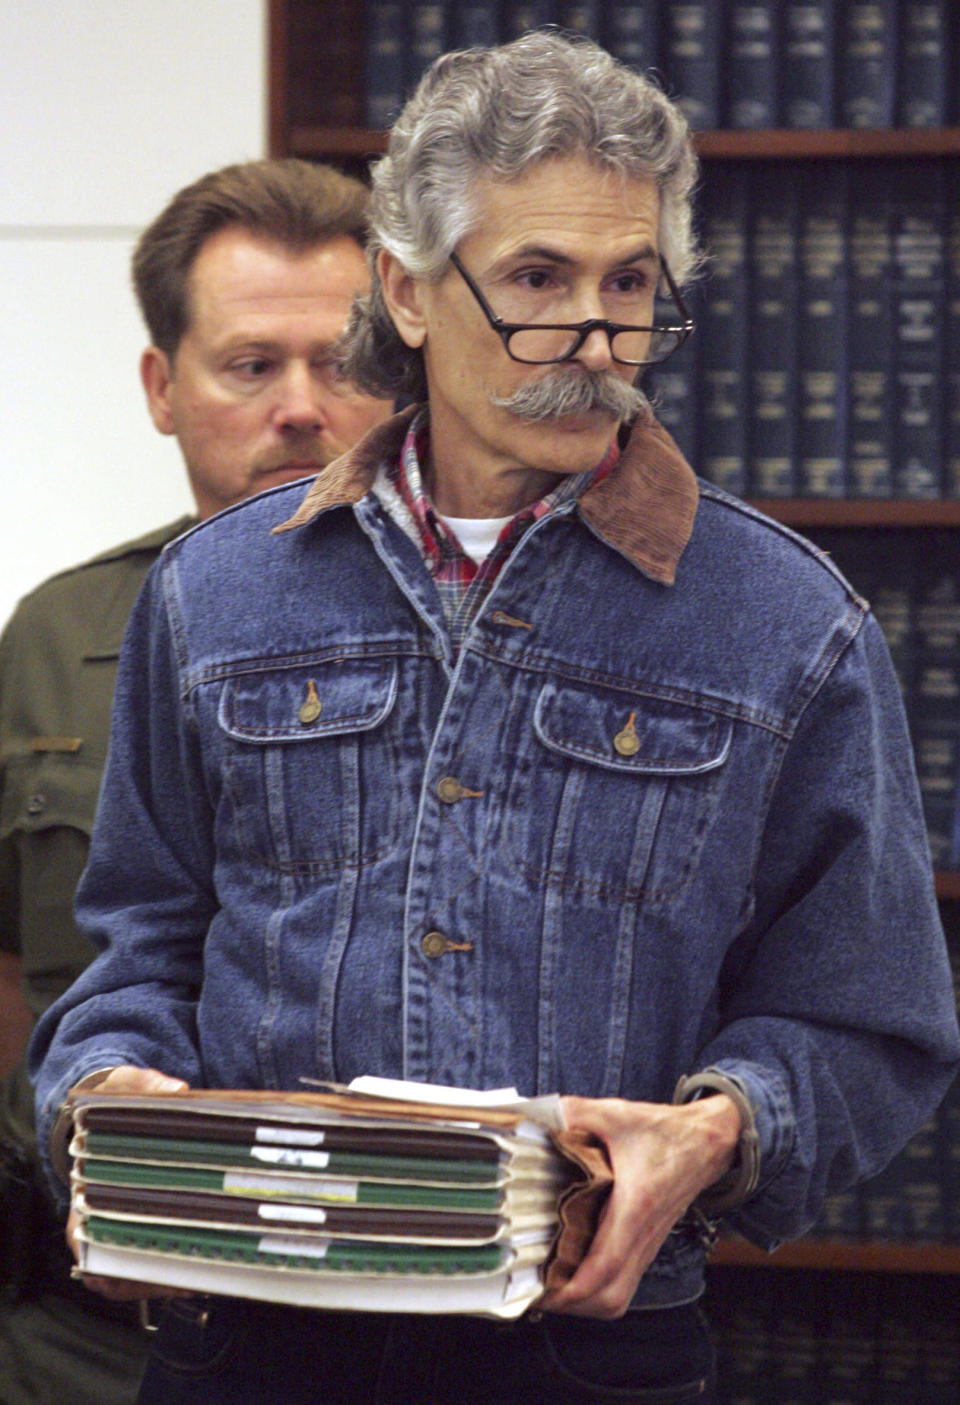 """FILE - In this Sept, 19, 2005, file photo, Rodney James Alcala, a former death row inmate who was twice convicted of the 1979 killing of a 12-year-old Huntington Beach girl, is shown in Orange County Superior Court in Santa Ana, Calif. Alcala, a prolific serial torture-slayer dubbed """"The Dating Game Killer"""" has died while awaiting execution in California. He died of natural causes at a hospital in San Joaquin Valley, Calif., prison officials said in a statement. (Ygnacio Nanetti/The Orange County Register via AP)"""